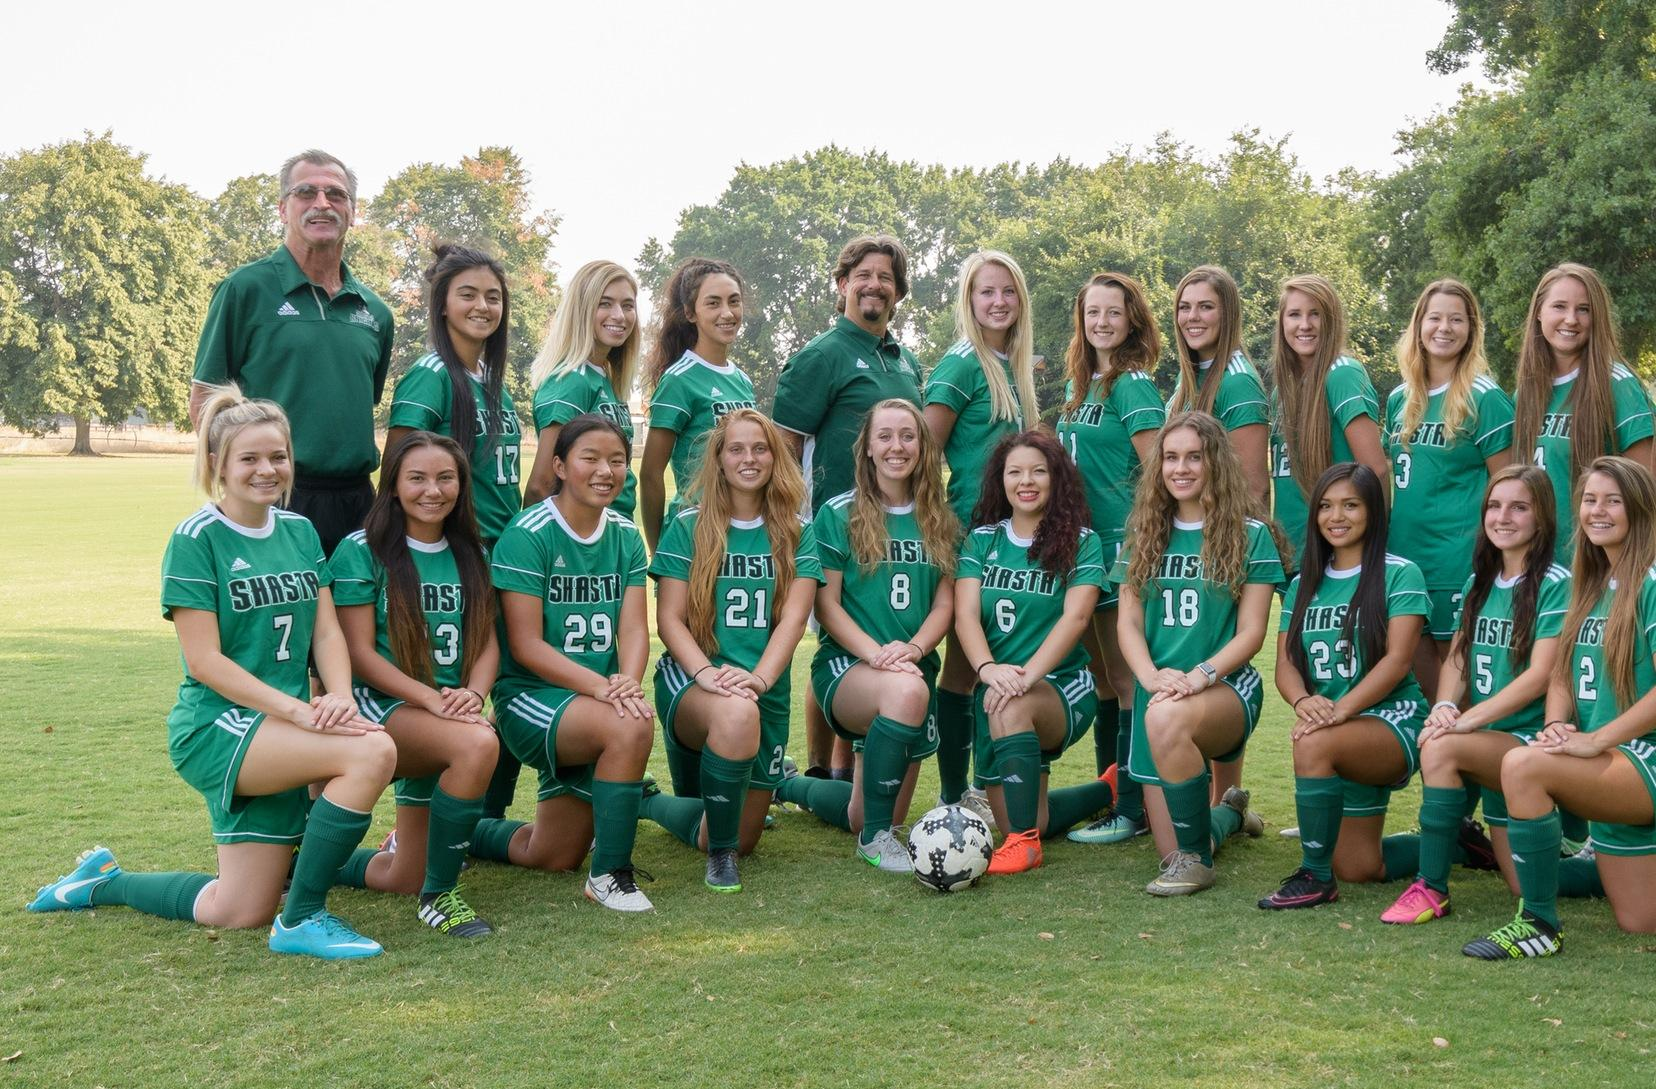 Shasta College Lady Knights Women's Soccer Team